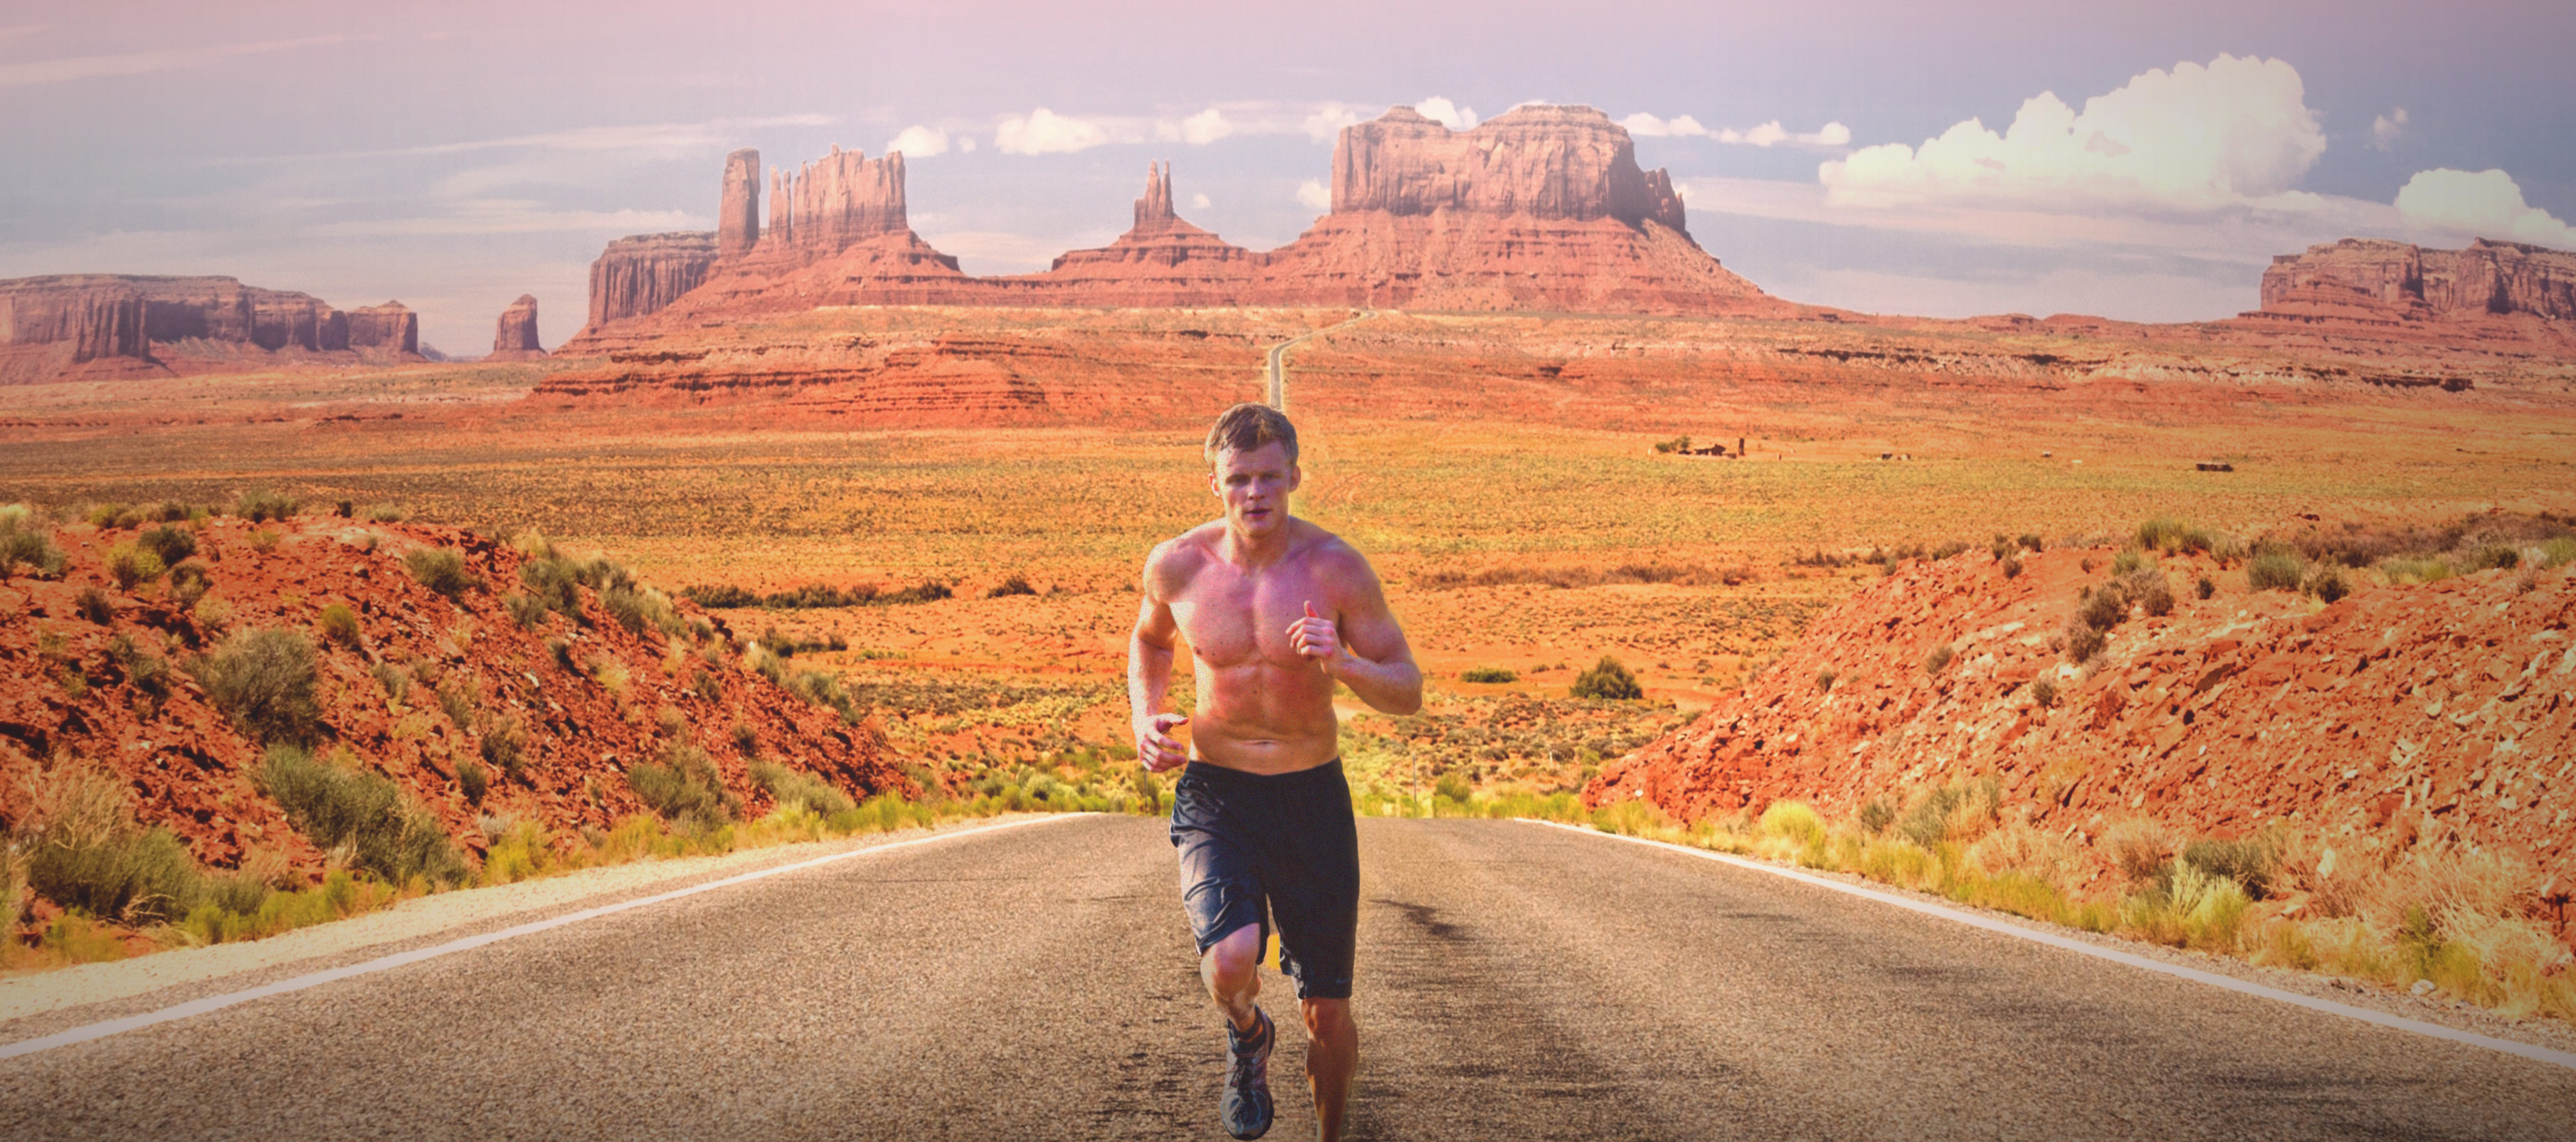 Runner on monument valley photo